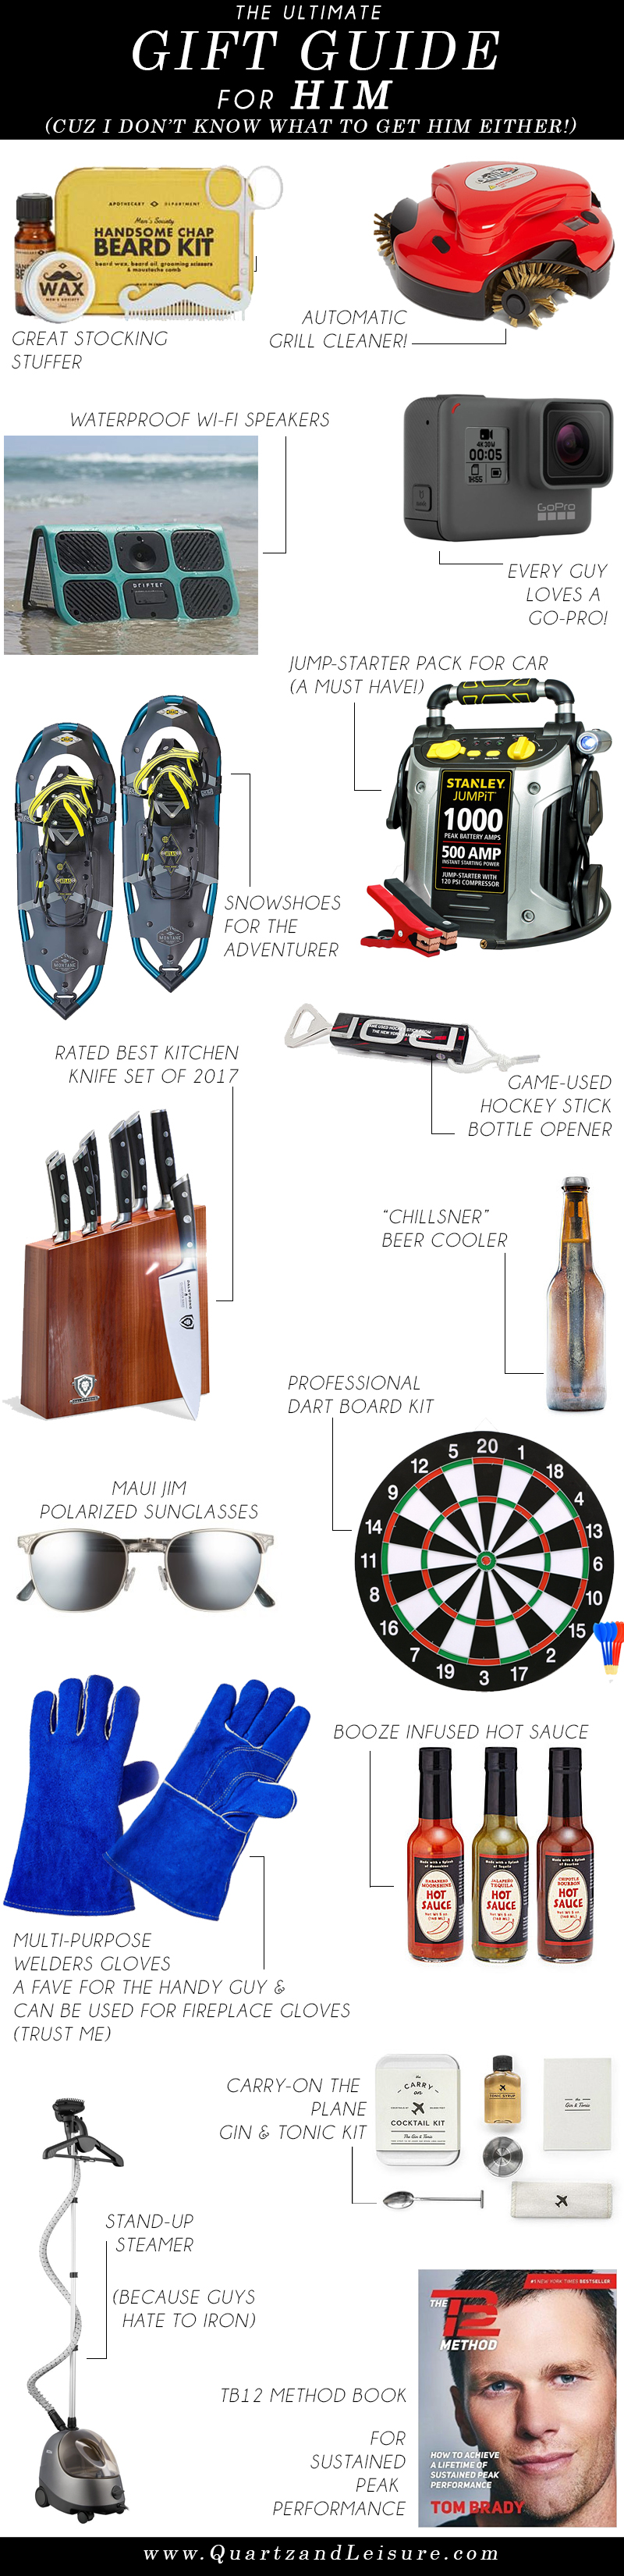 Gift Guide For Him 2017 - Best Gift Ideas for him, gifts for him, gifts for men, gifts for boyfriend